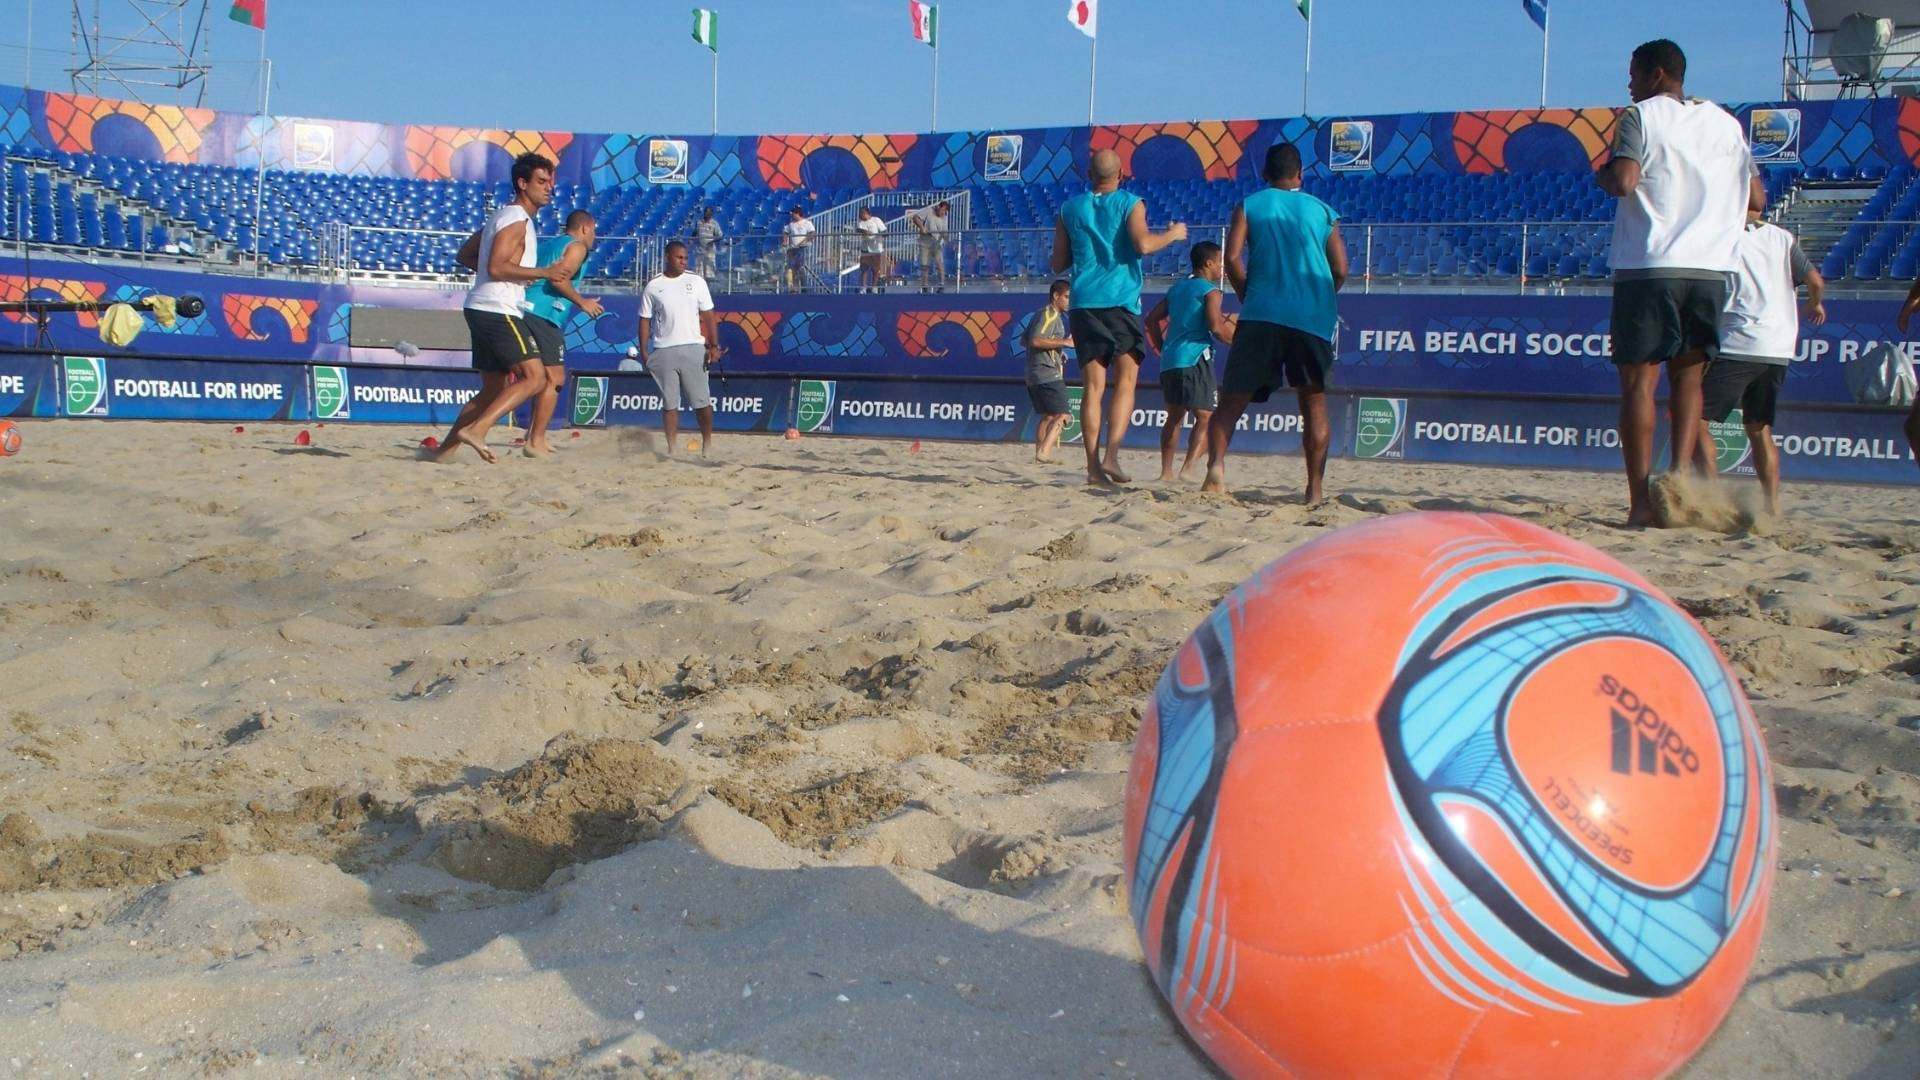 Seleo brasileira de Beach Soccer treina para o mundial de Ravenna (31/8/2011)